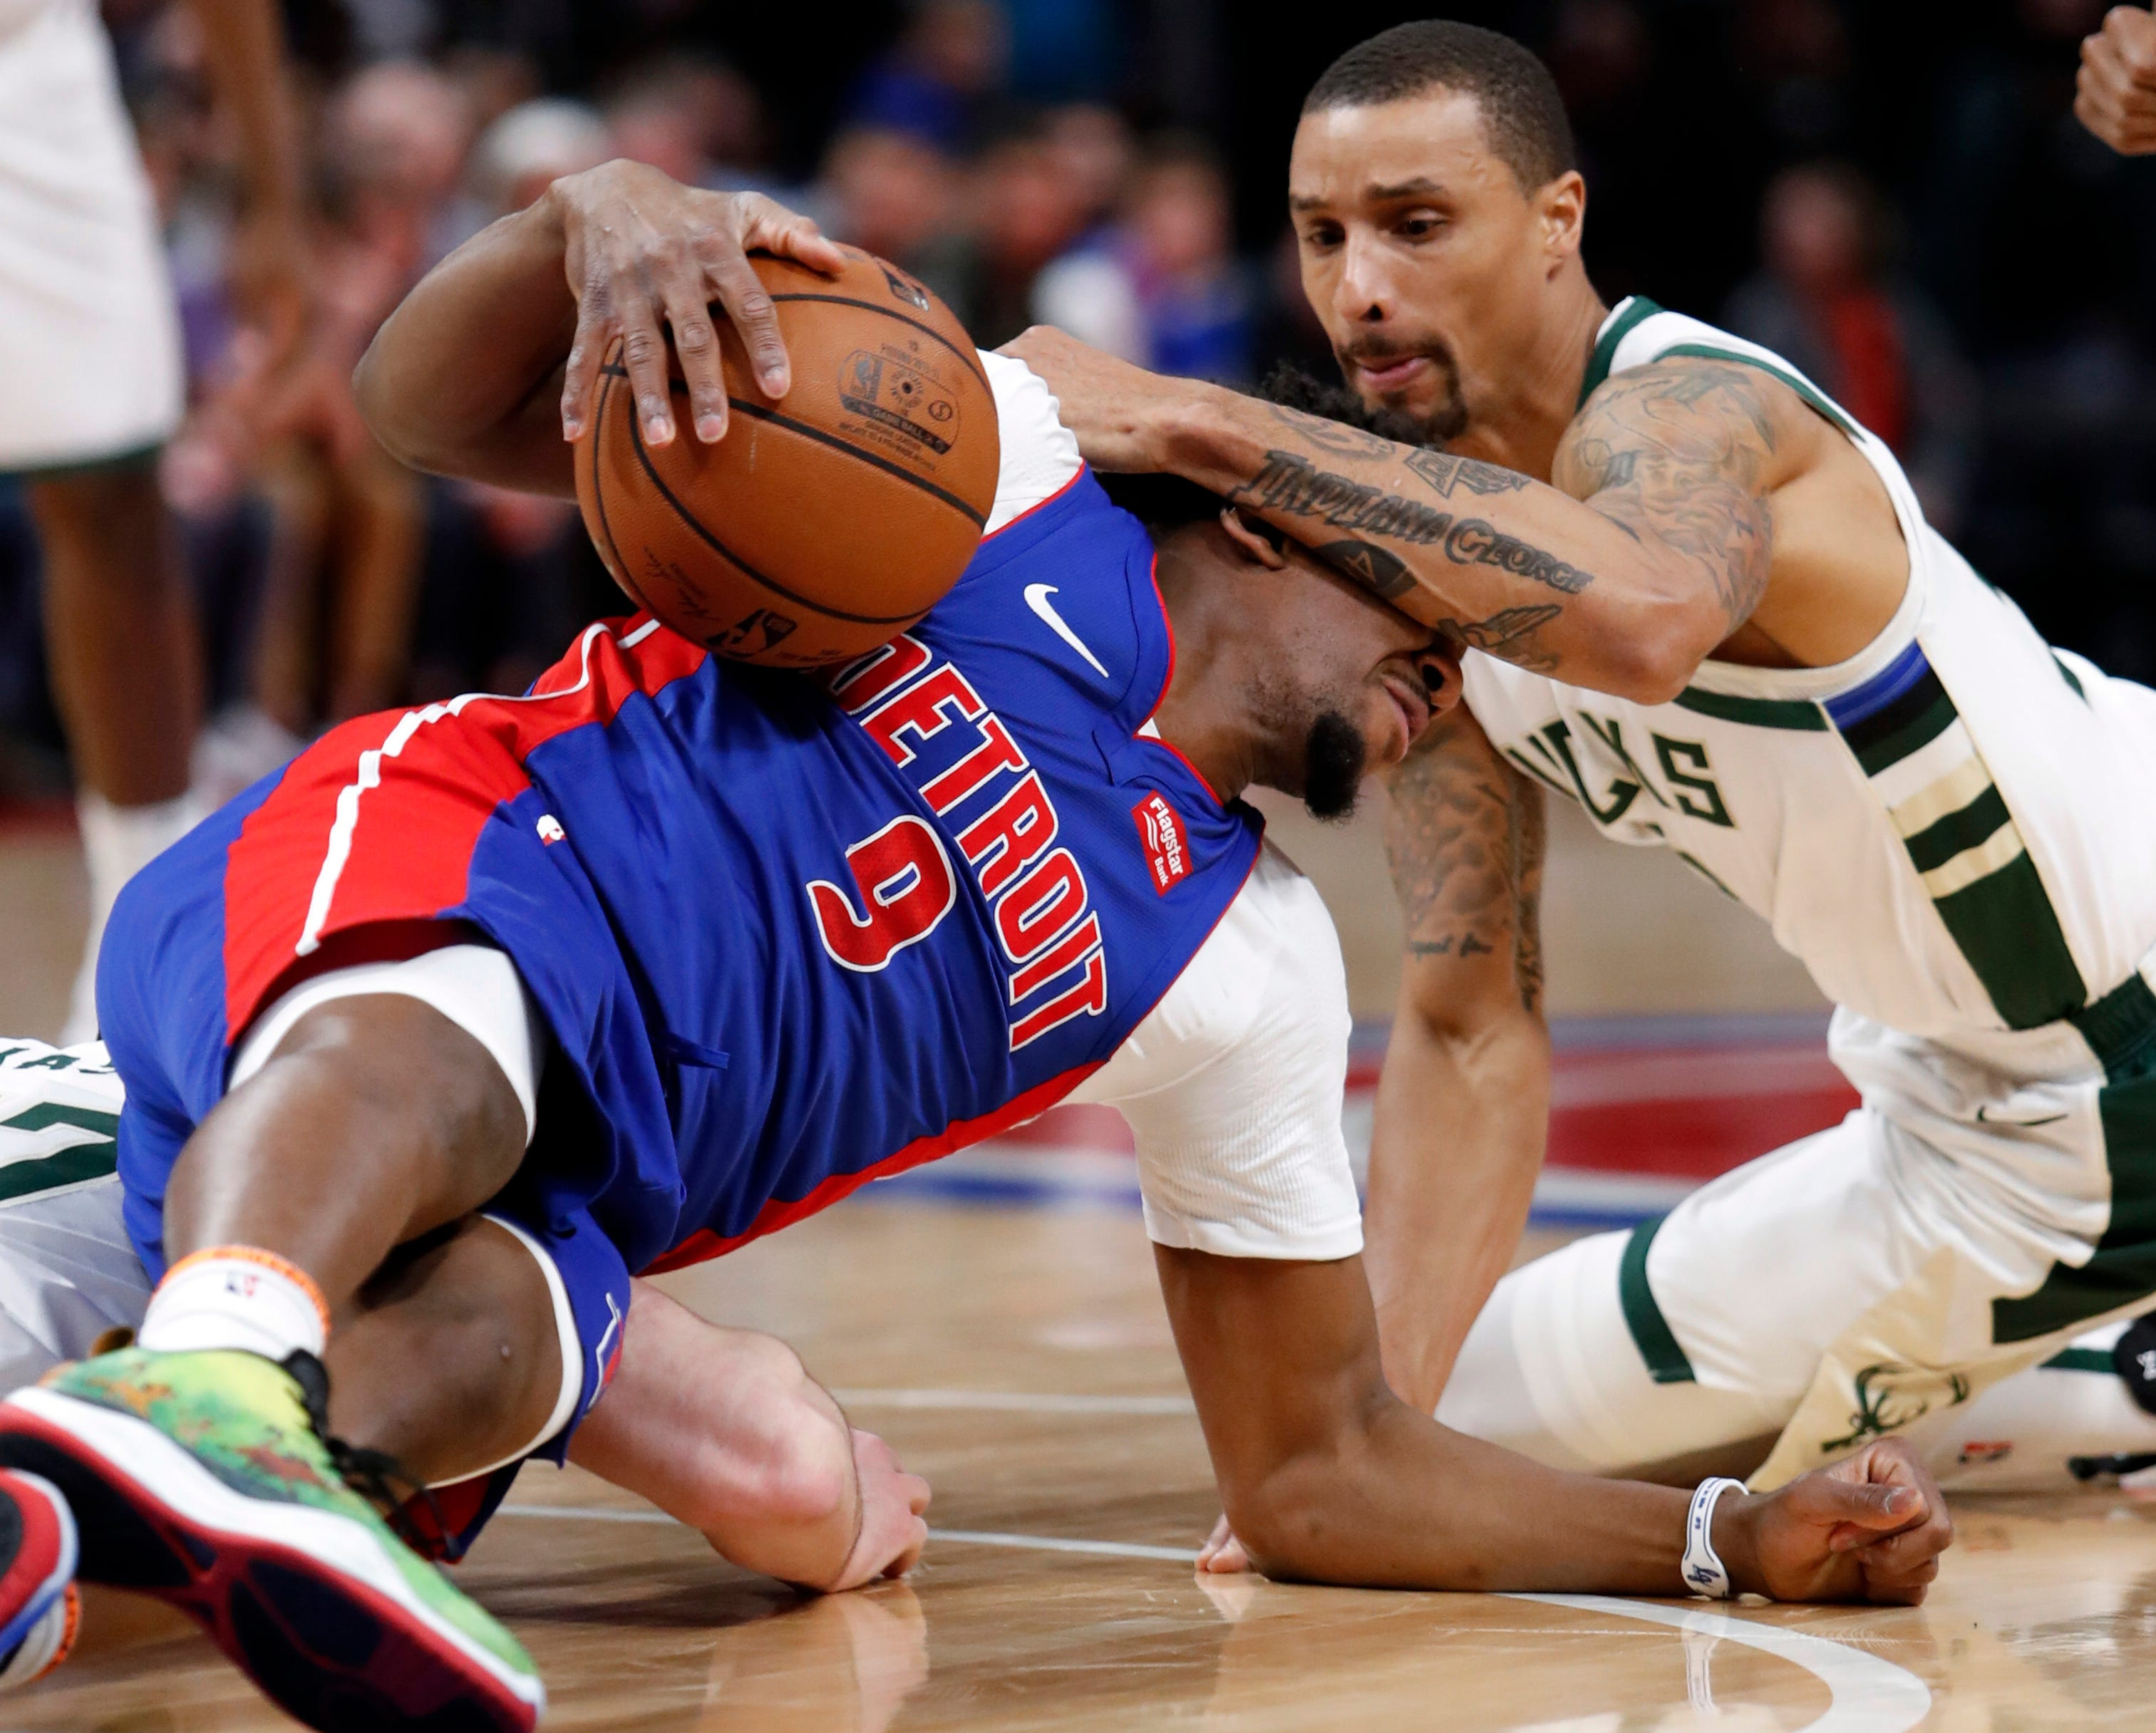 April 20: Pistons guard Langston Galloway (9) corrals a loose ball despite the hit from Bucks guard George Hill (3) during Game 3 in Detroit.